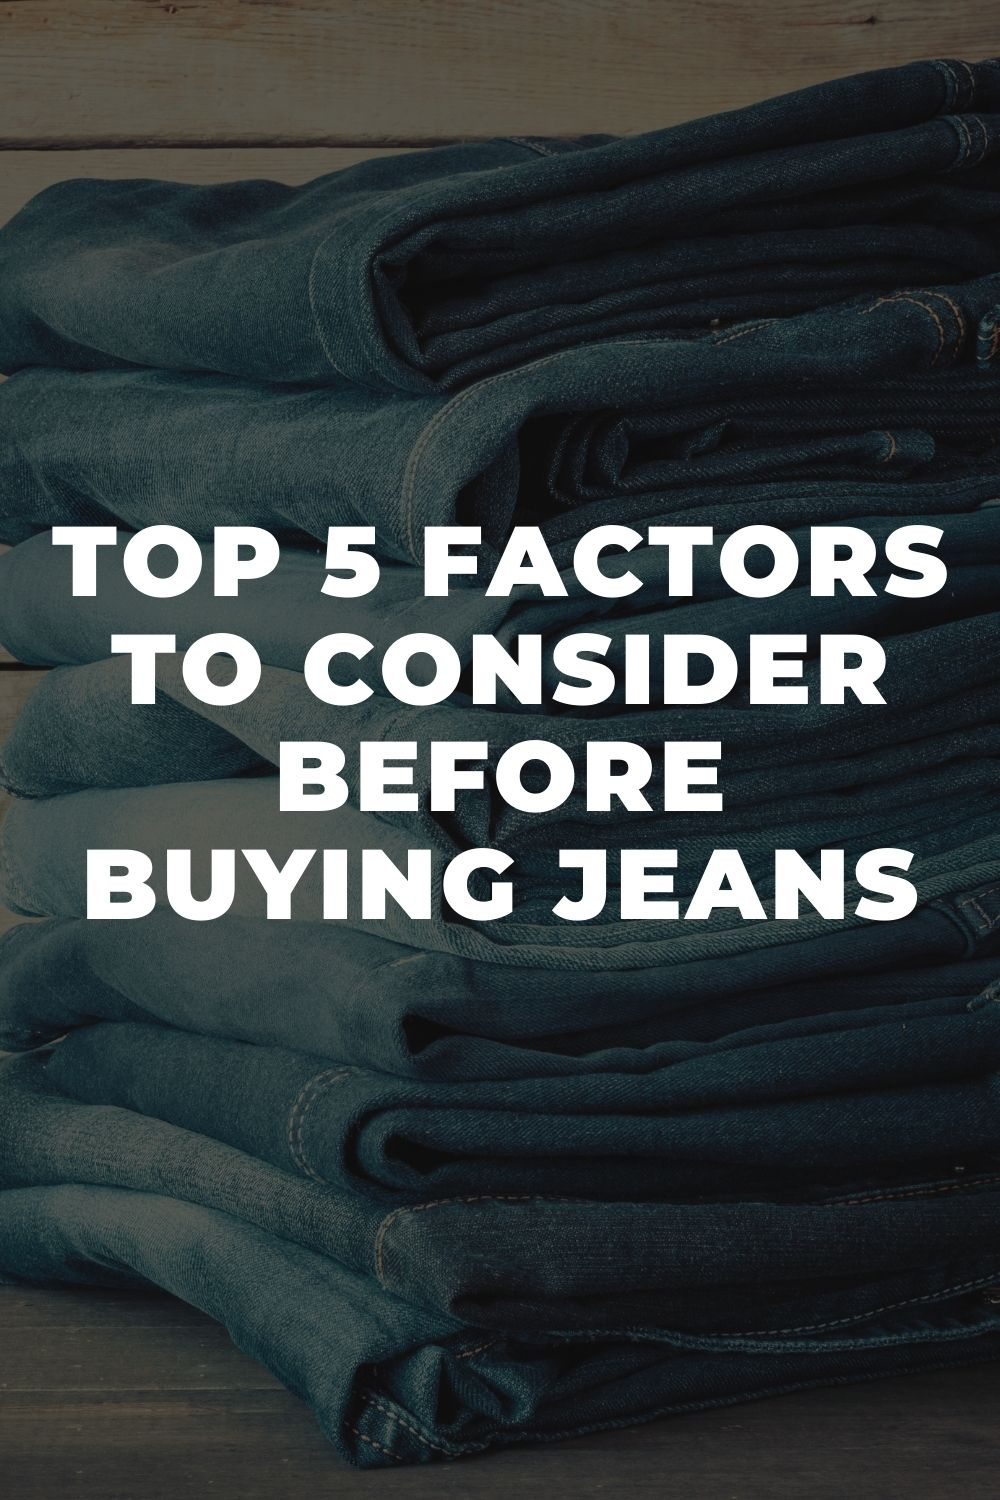 Top 5 Factors To Consider Before Buying Jeans